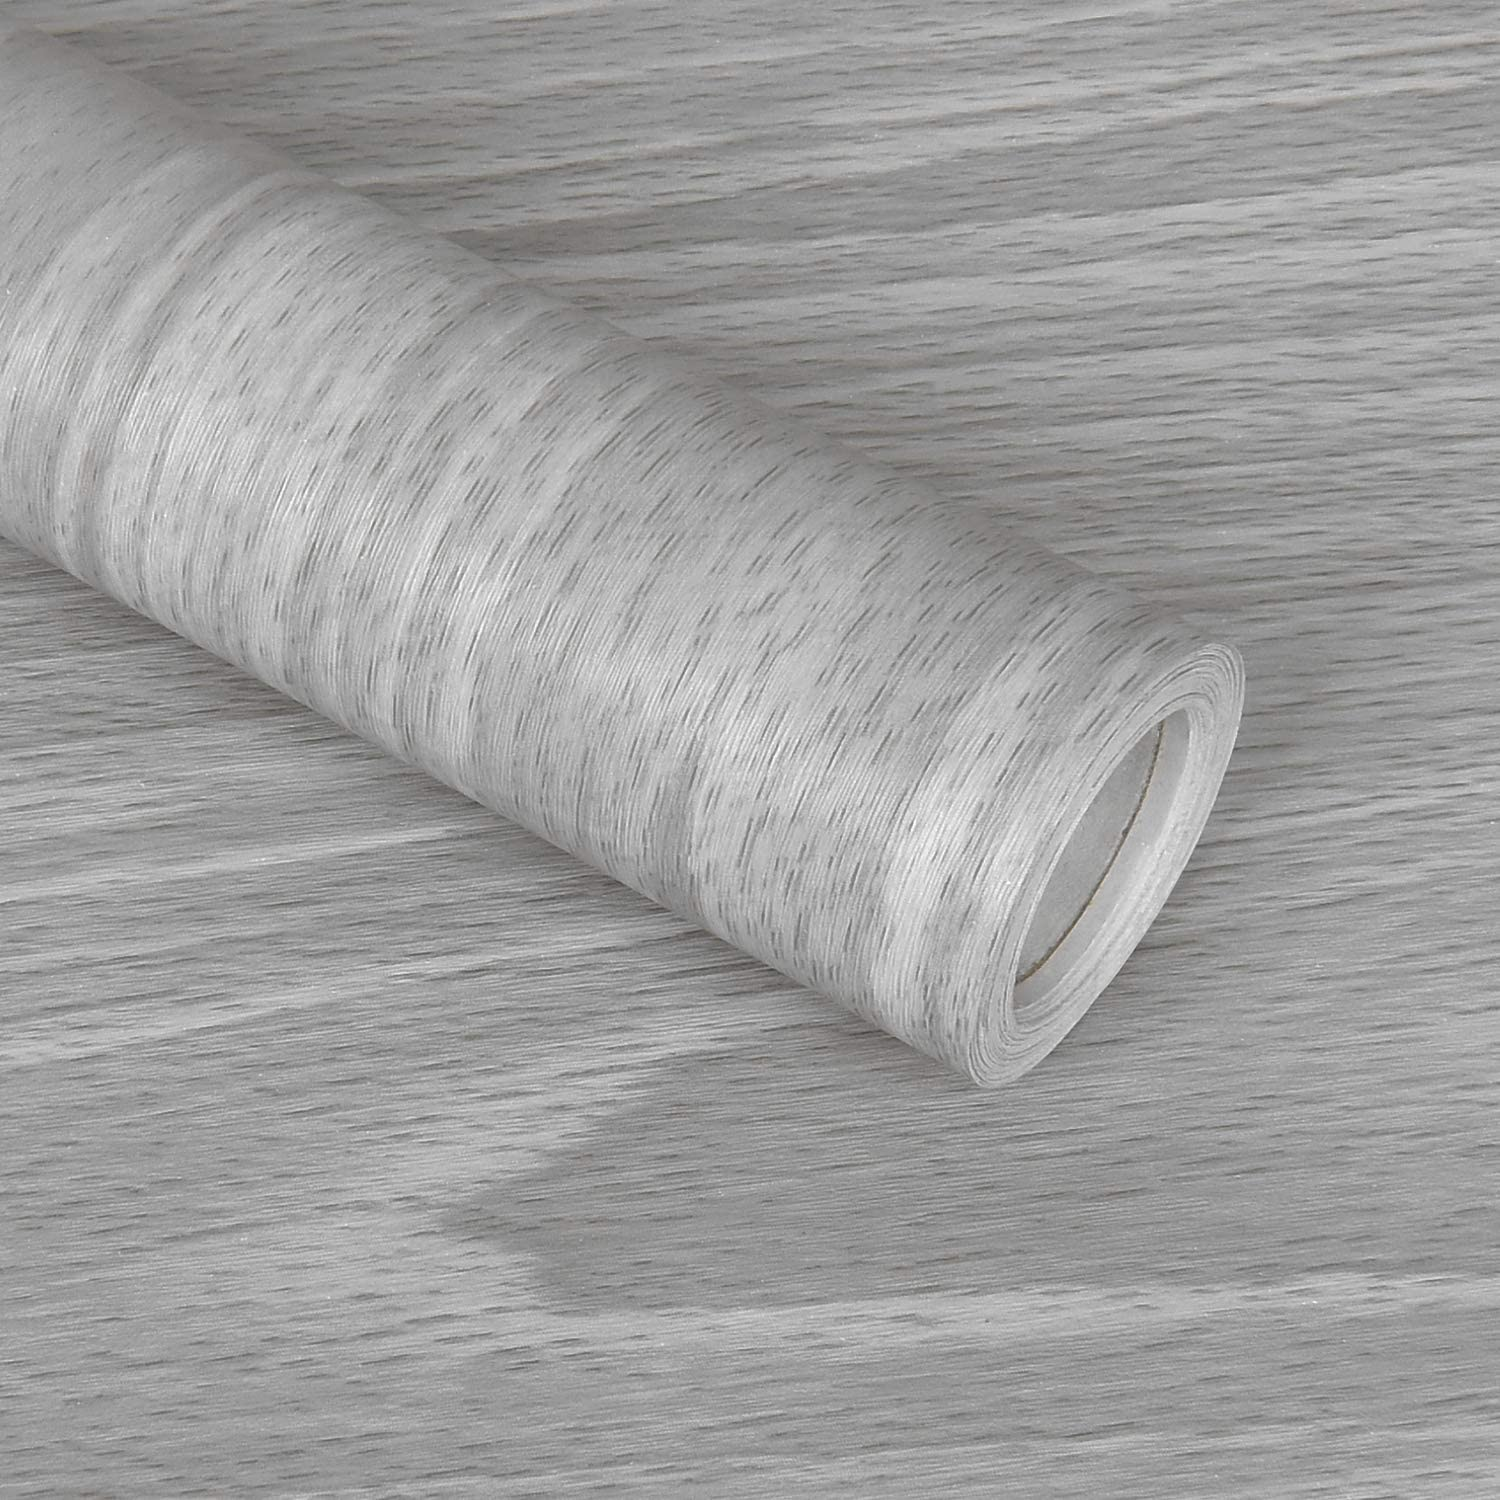 Melwod Gray Wood Free shipping on posting reviews Contact Daily bargain sale Paper 17.7 Textur Inch x 118 Grain